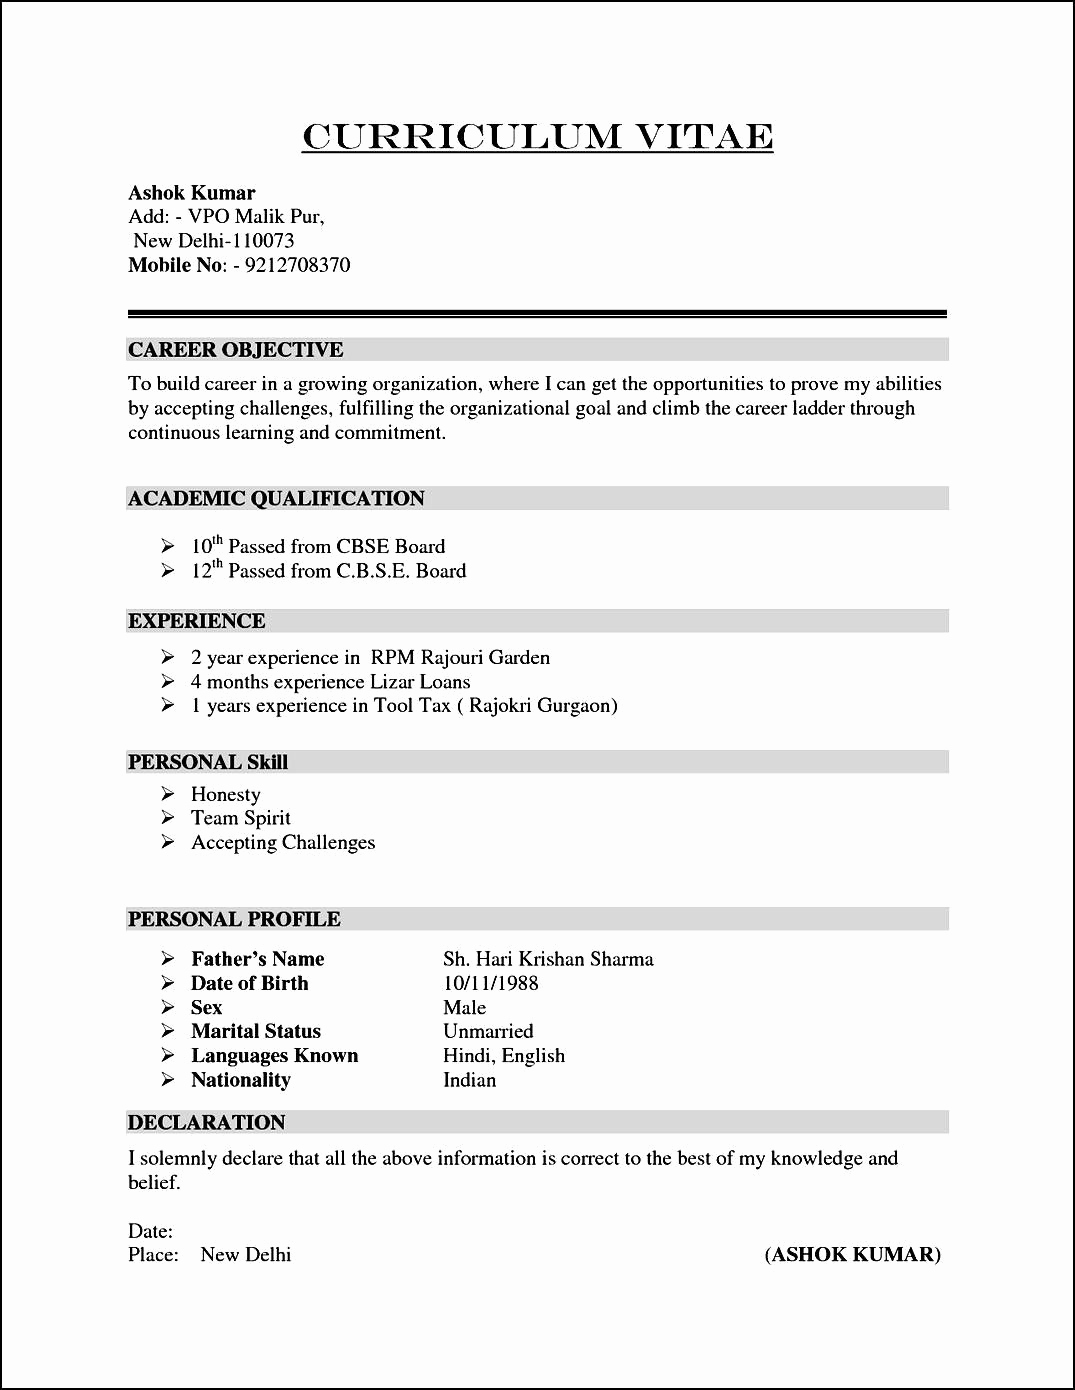 Sample Of Curriculum Vita Luxury Sample Curriculum Vitae Resume for Career Objective with